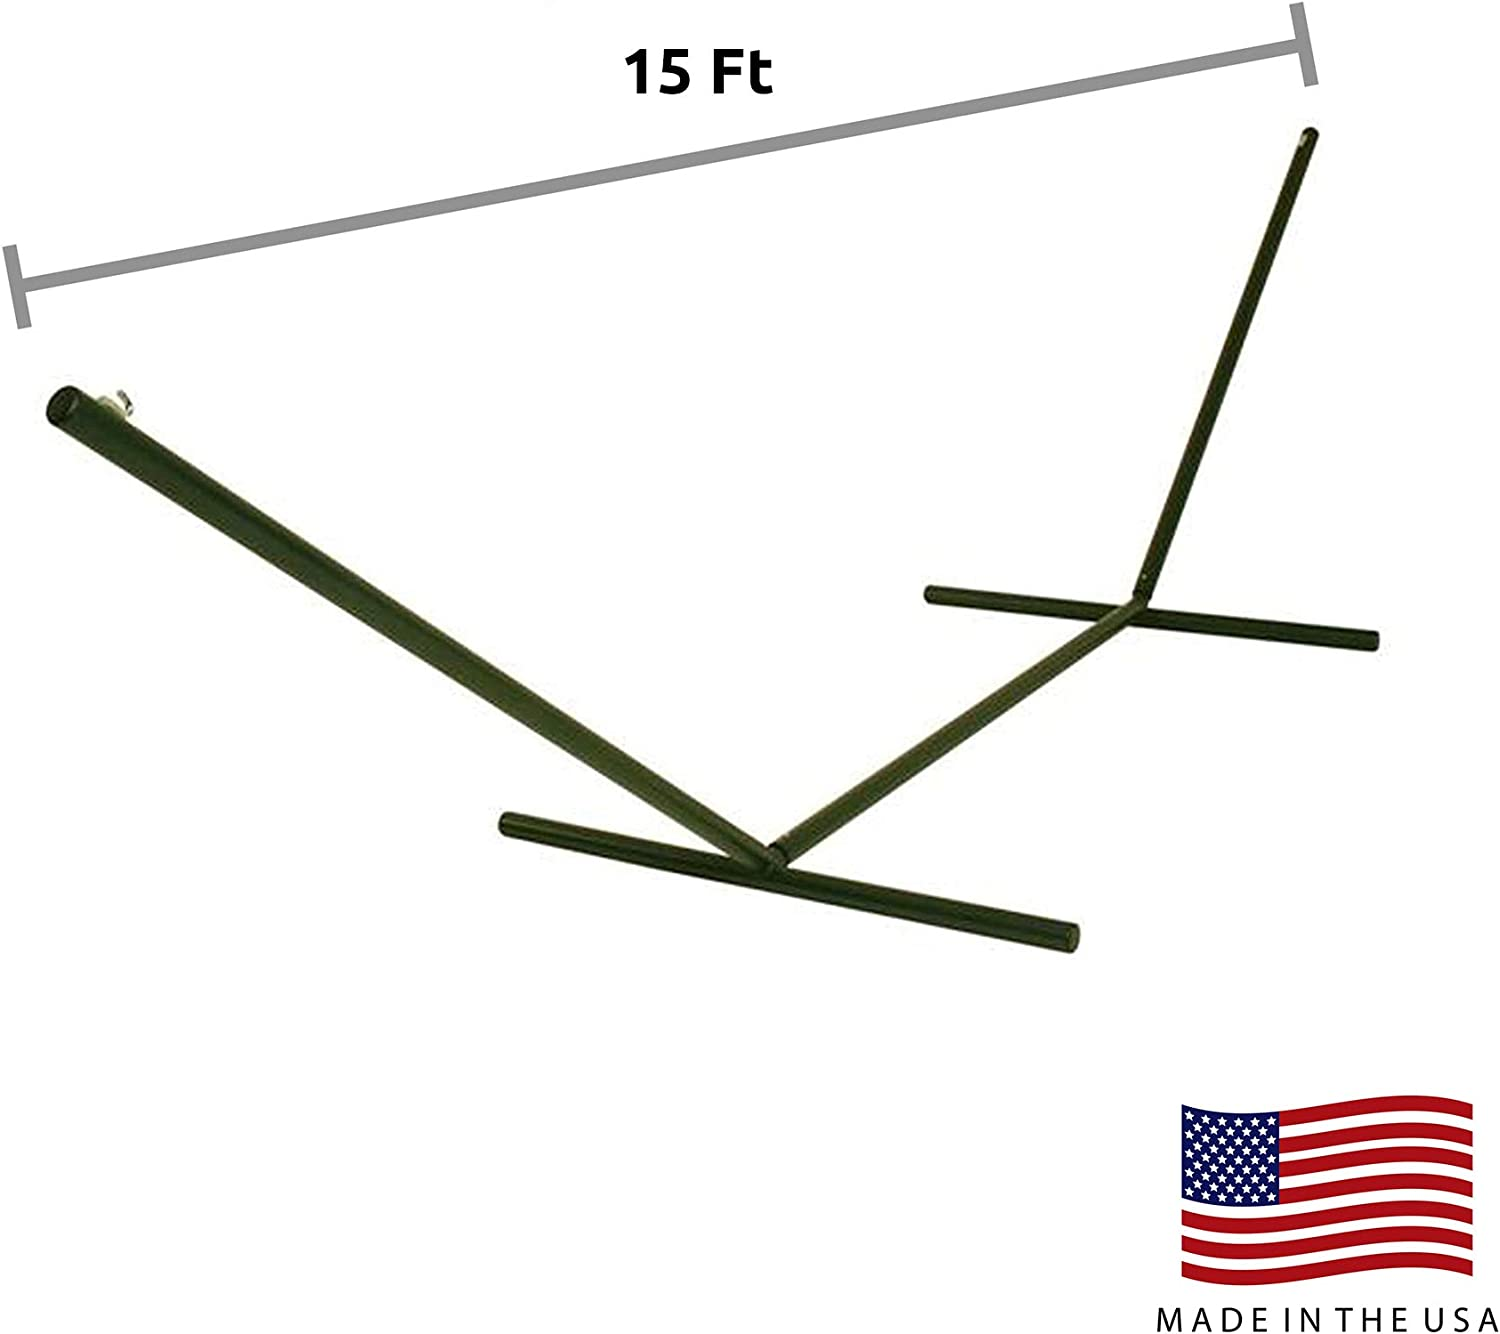 Hatteras 15 ft Tri-Beam Steel Hammock Stand Forest Green